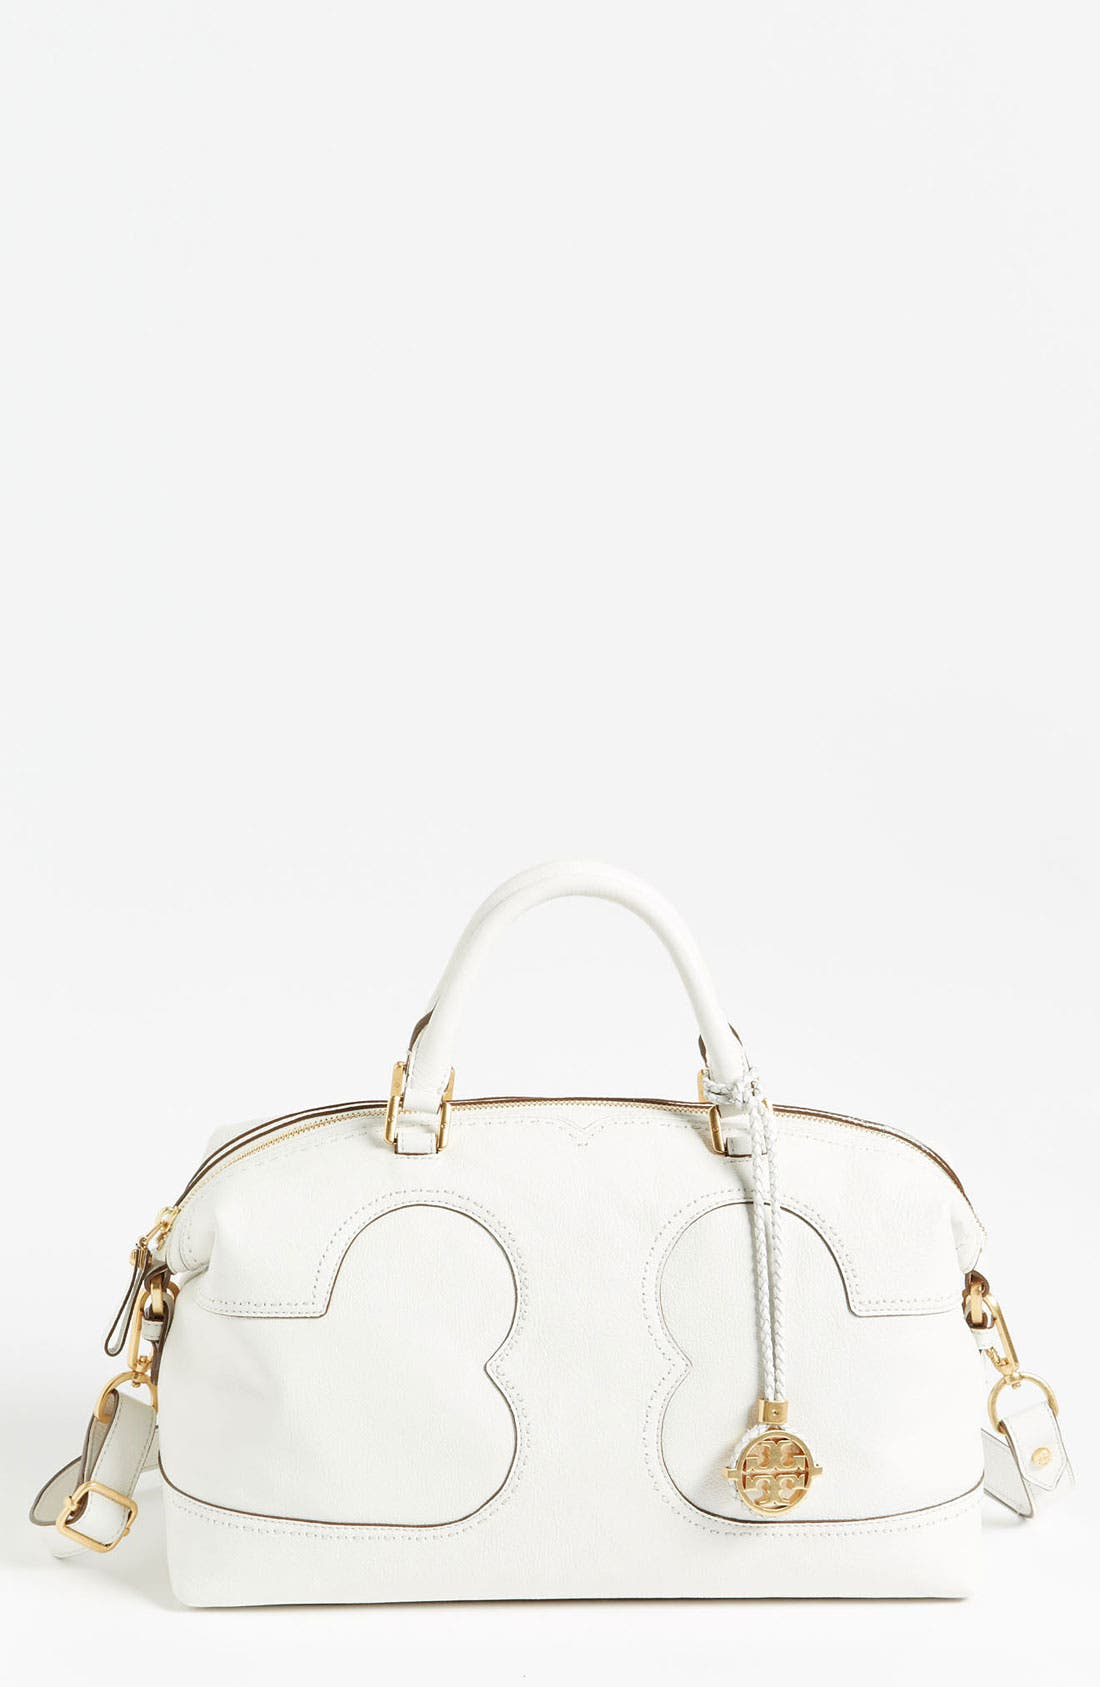 Alternate Image 1 Selected - Tory Burch 'Amalie' Leather Satchel